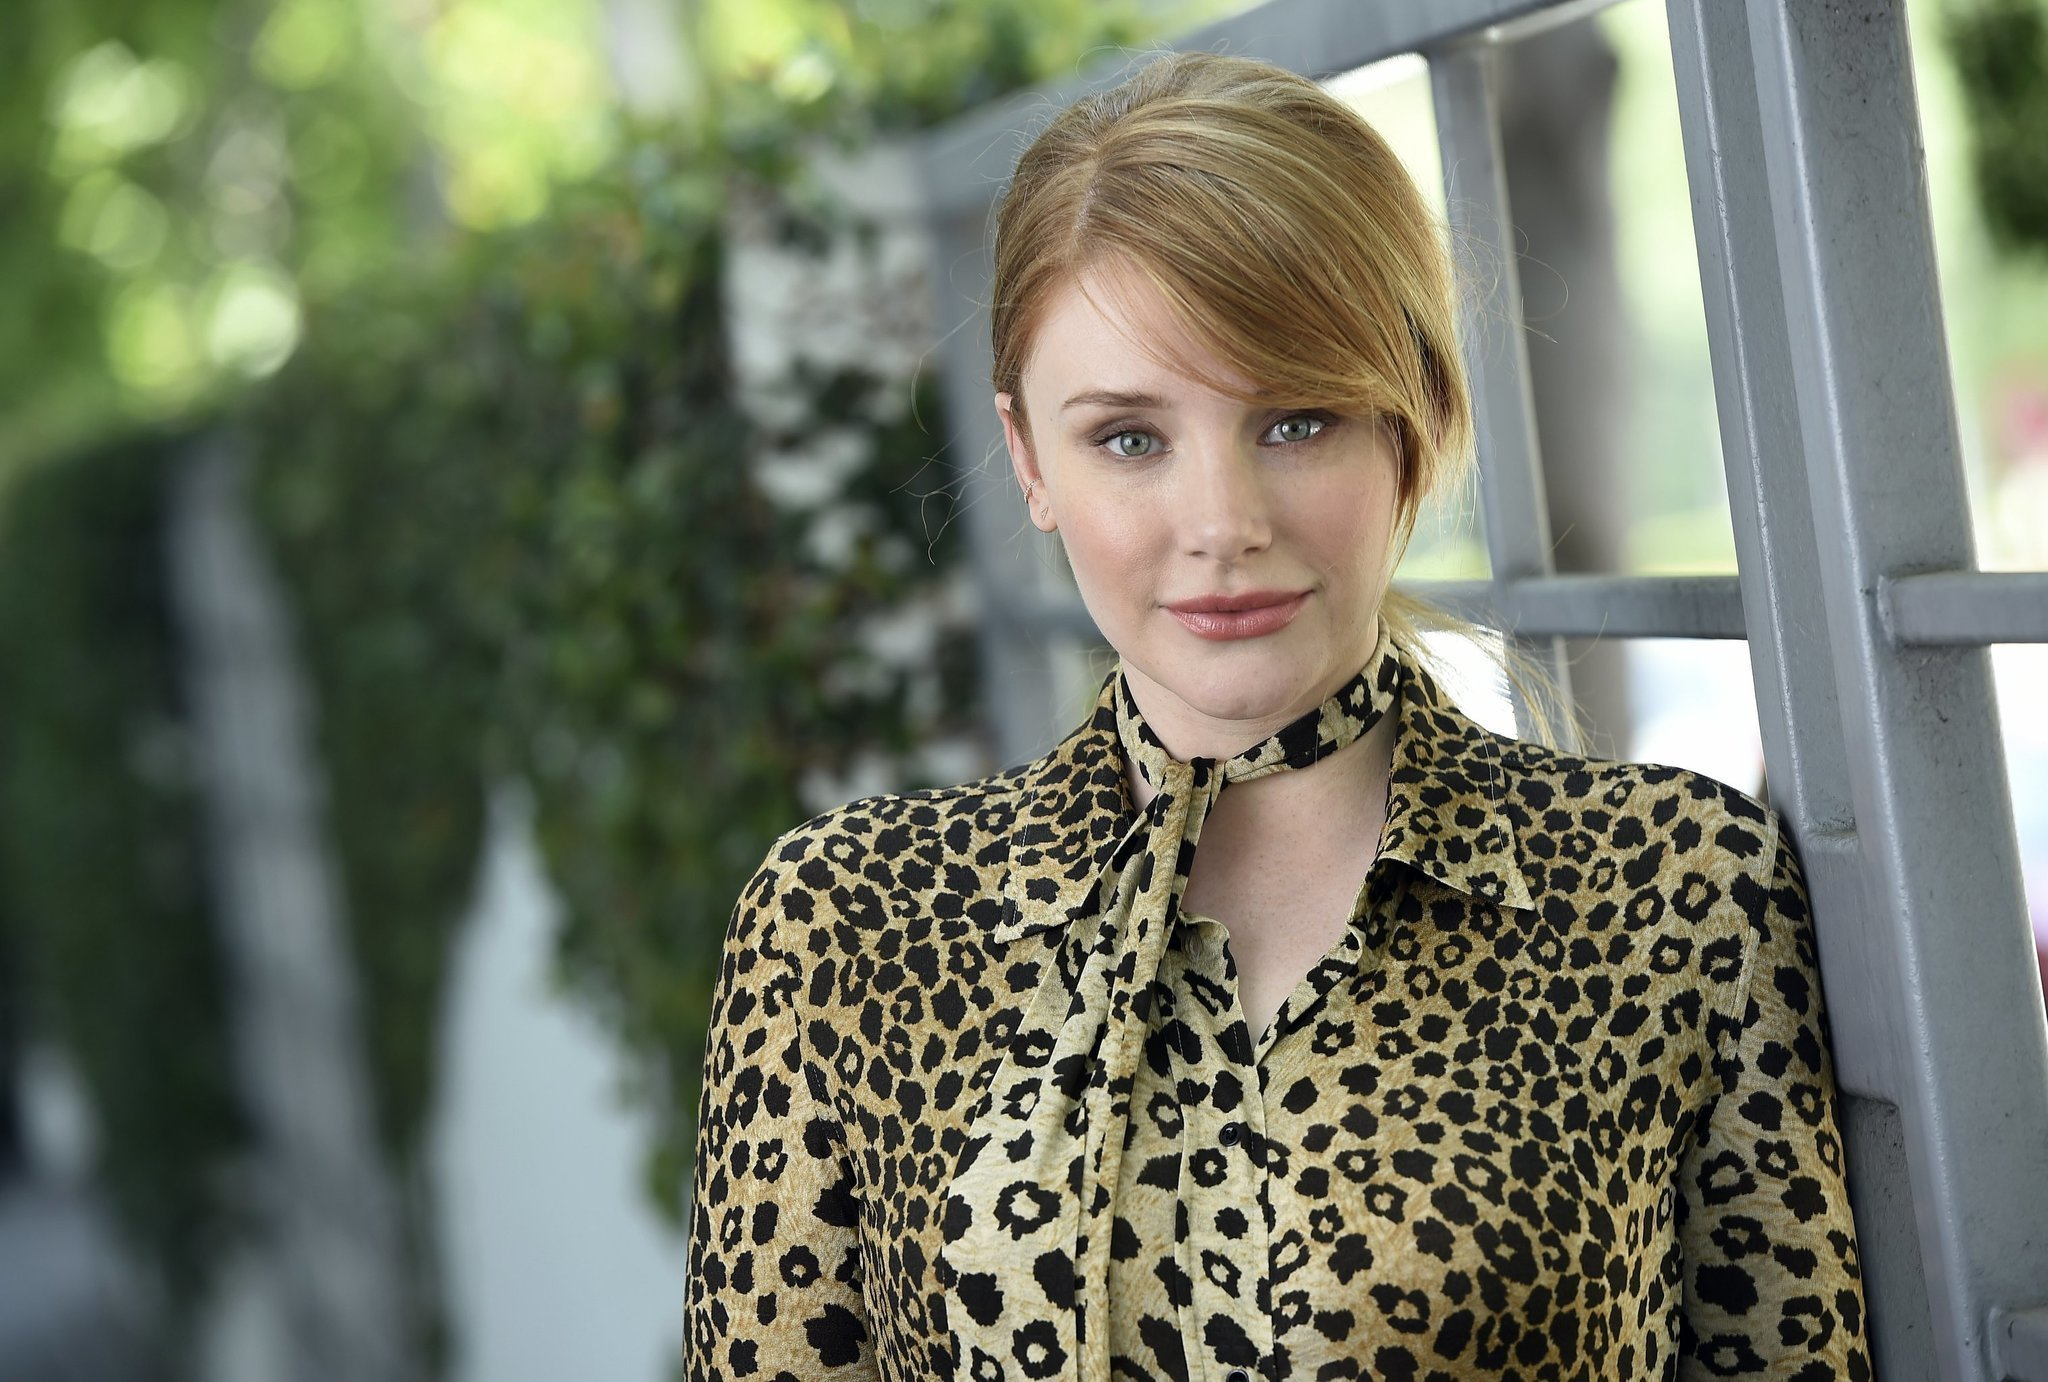 family films span generations for bryce dallas howard the san